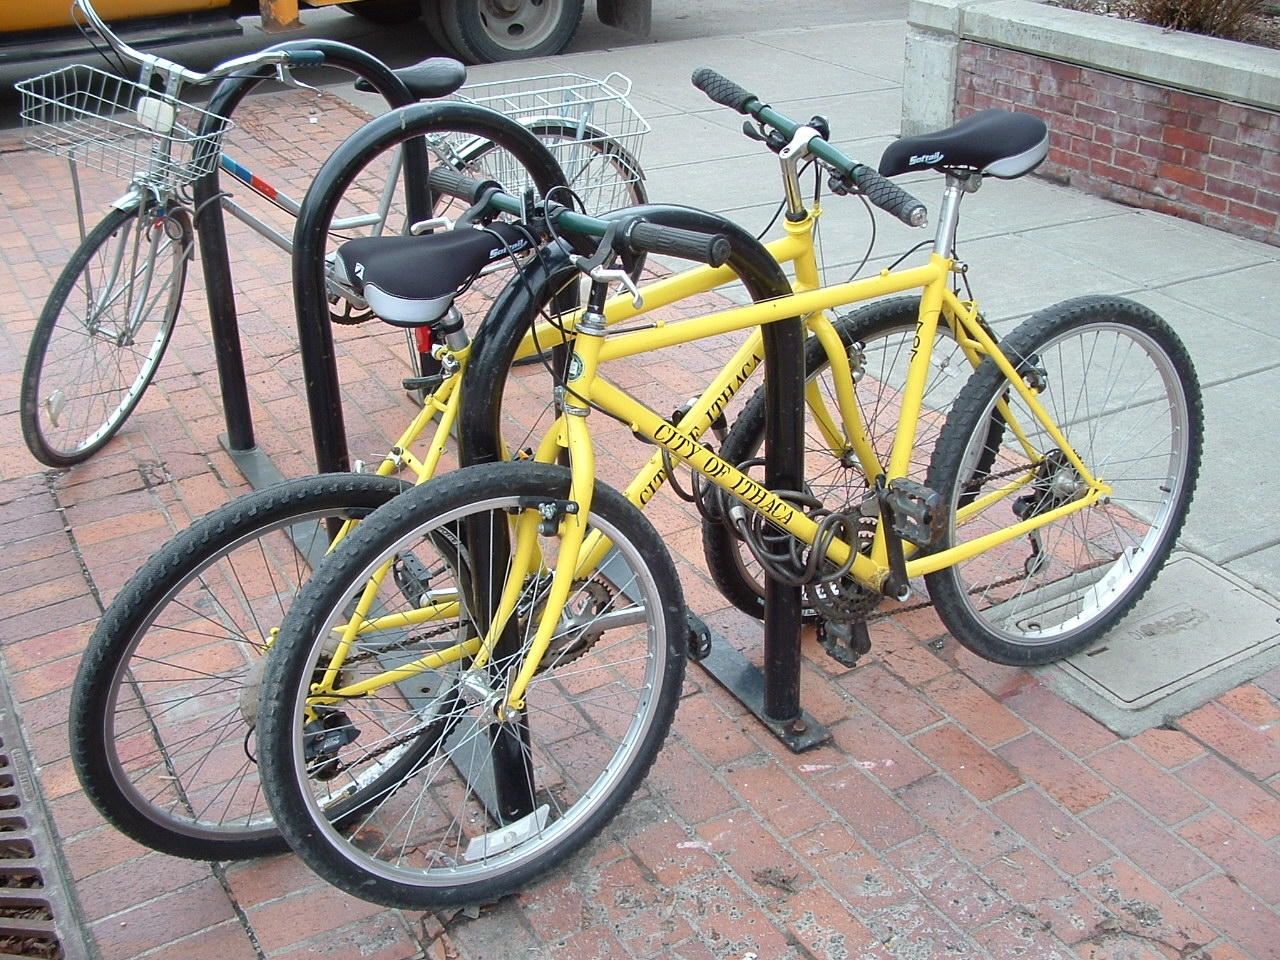 The City of Ithaca provides bikes to its employees for short trips and errands. Photo: Kent Johnson